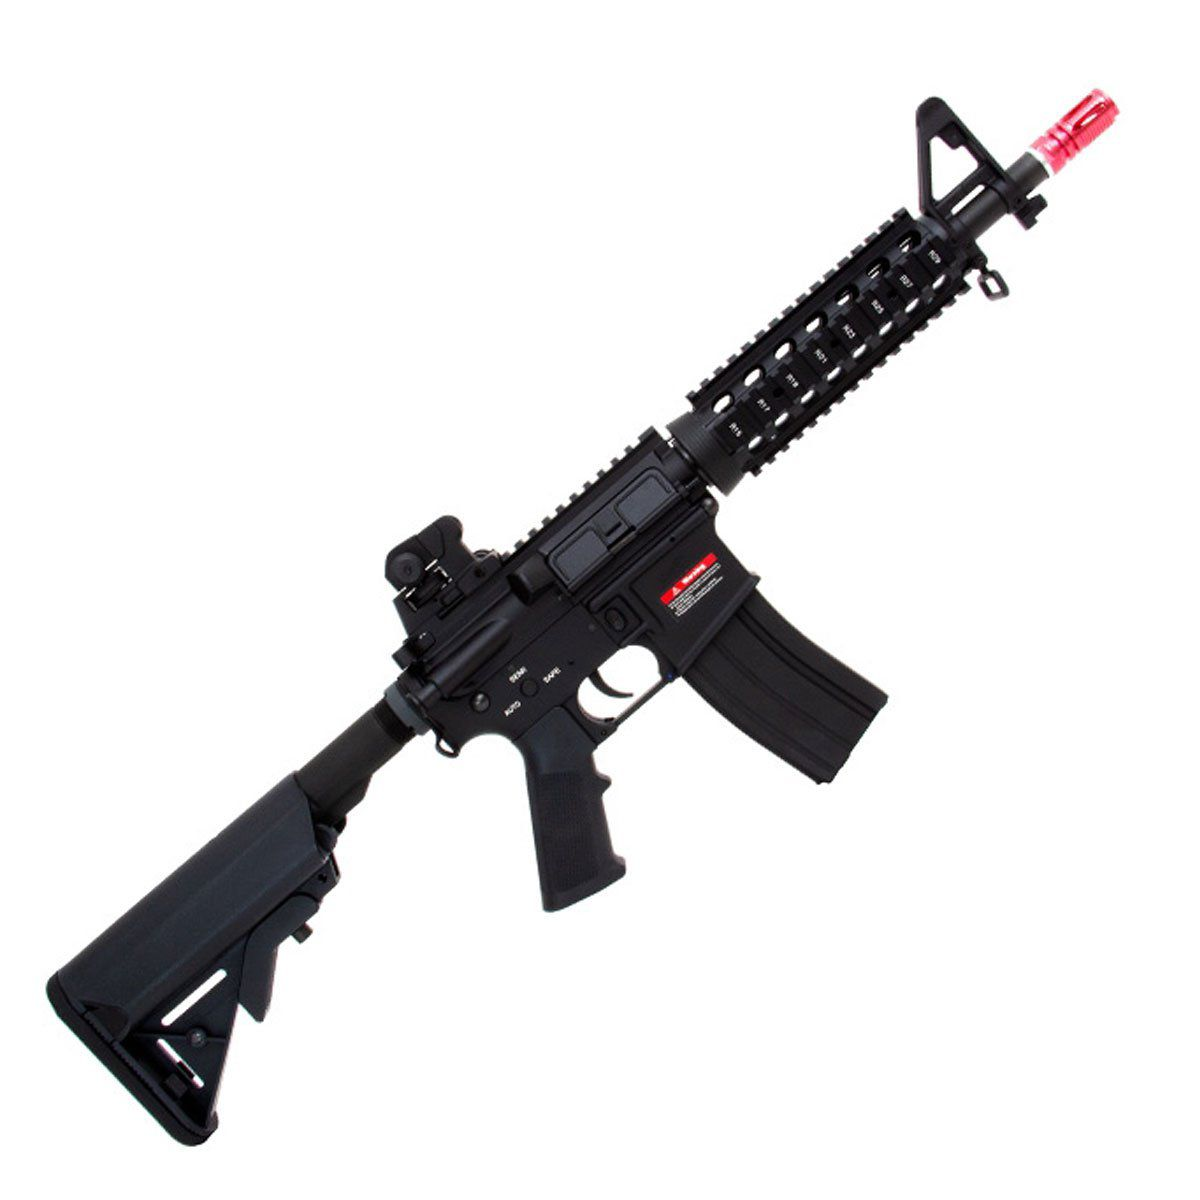 Rifle Airsoft Evo M4A1 CQB 302 Full Metal Elétrico